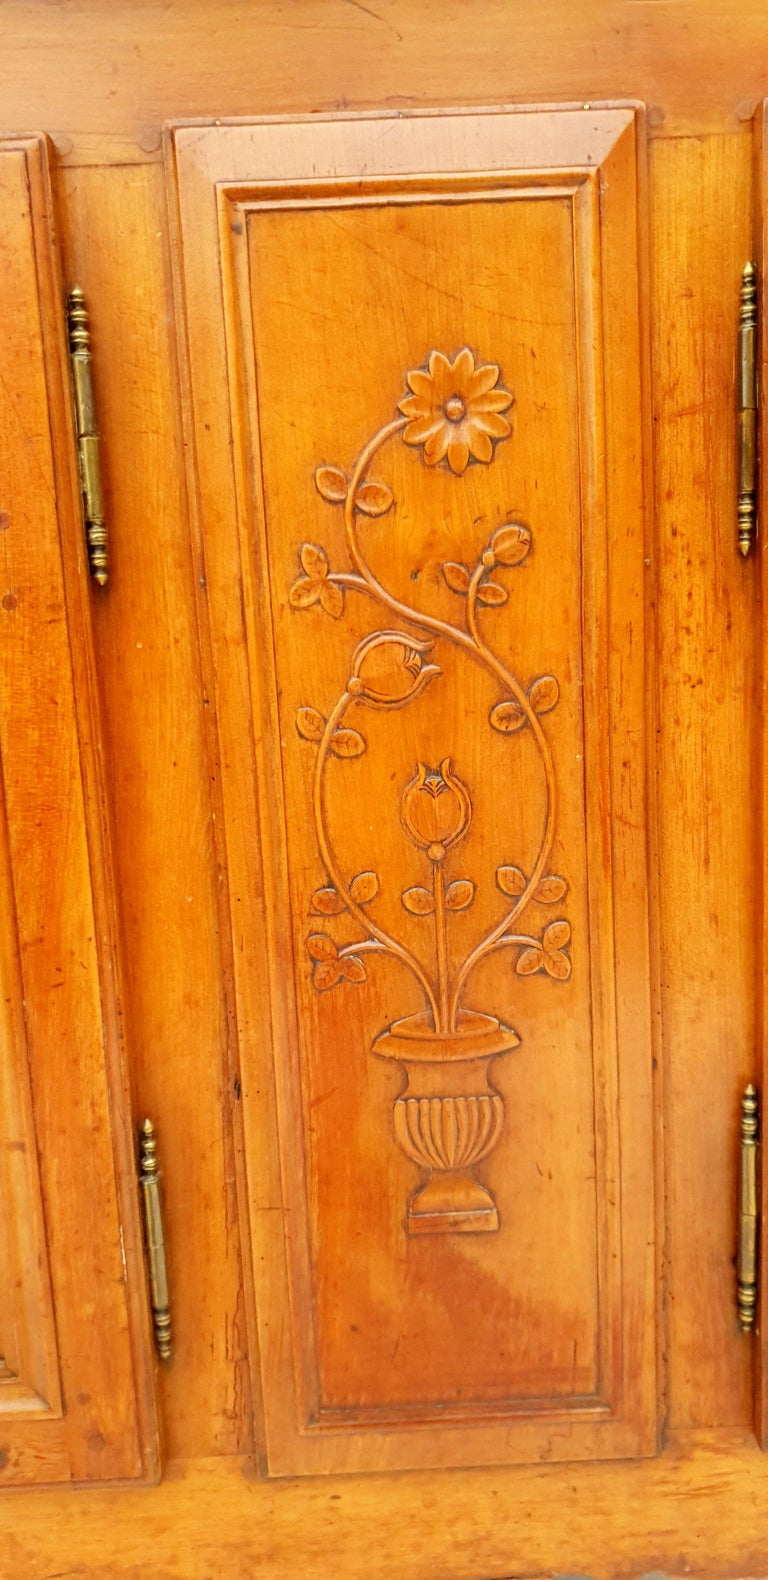 Baroque Sideboard, Provence, France, 1780s In Good Condition For Sale In Kiel, Schleswig-Holstein